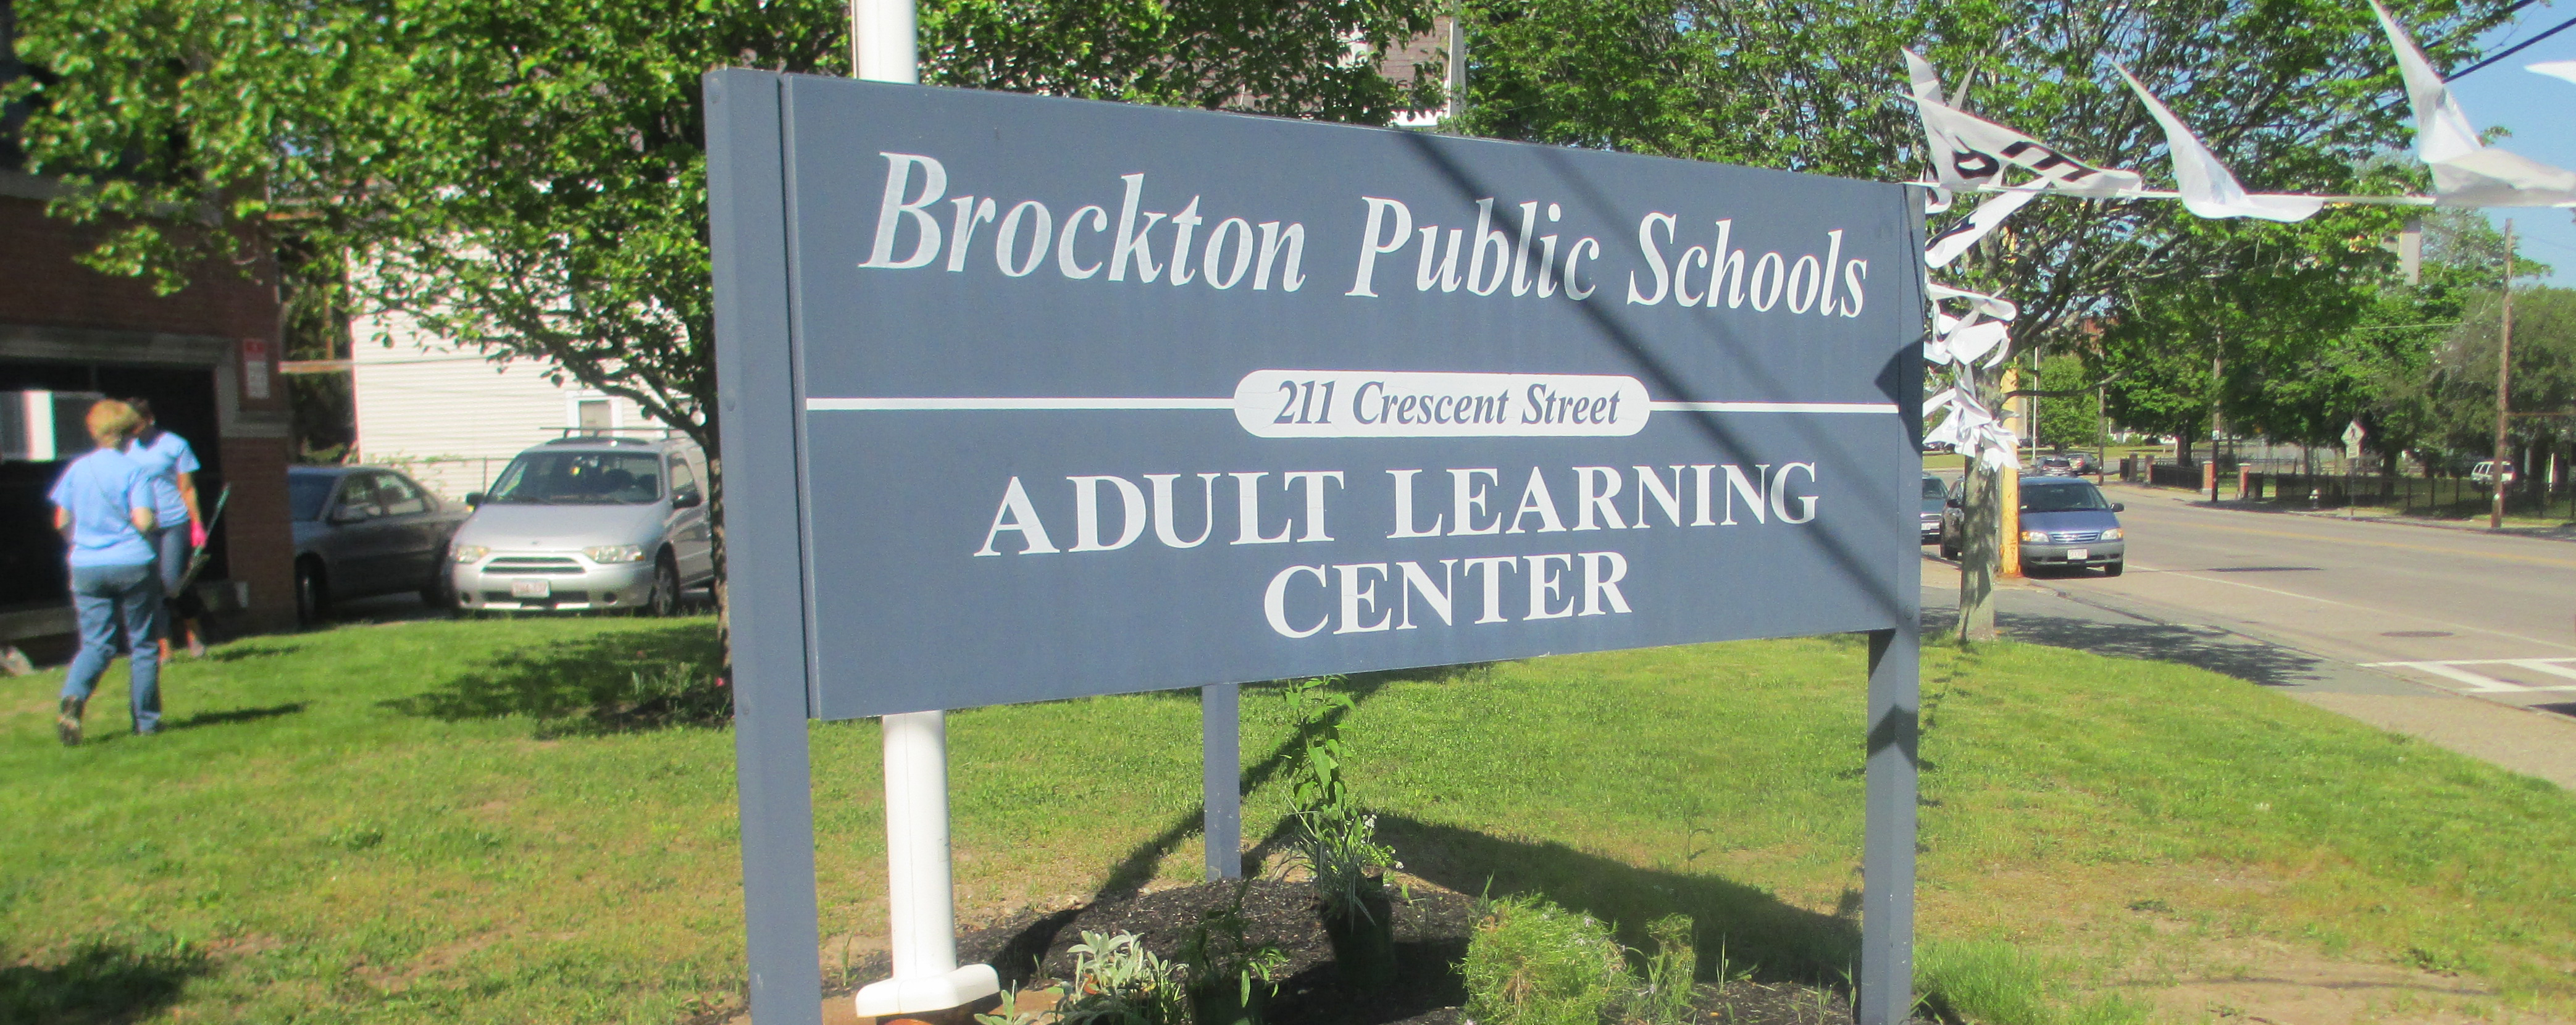 Image: Adult Learning Center, Brockton, MA